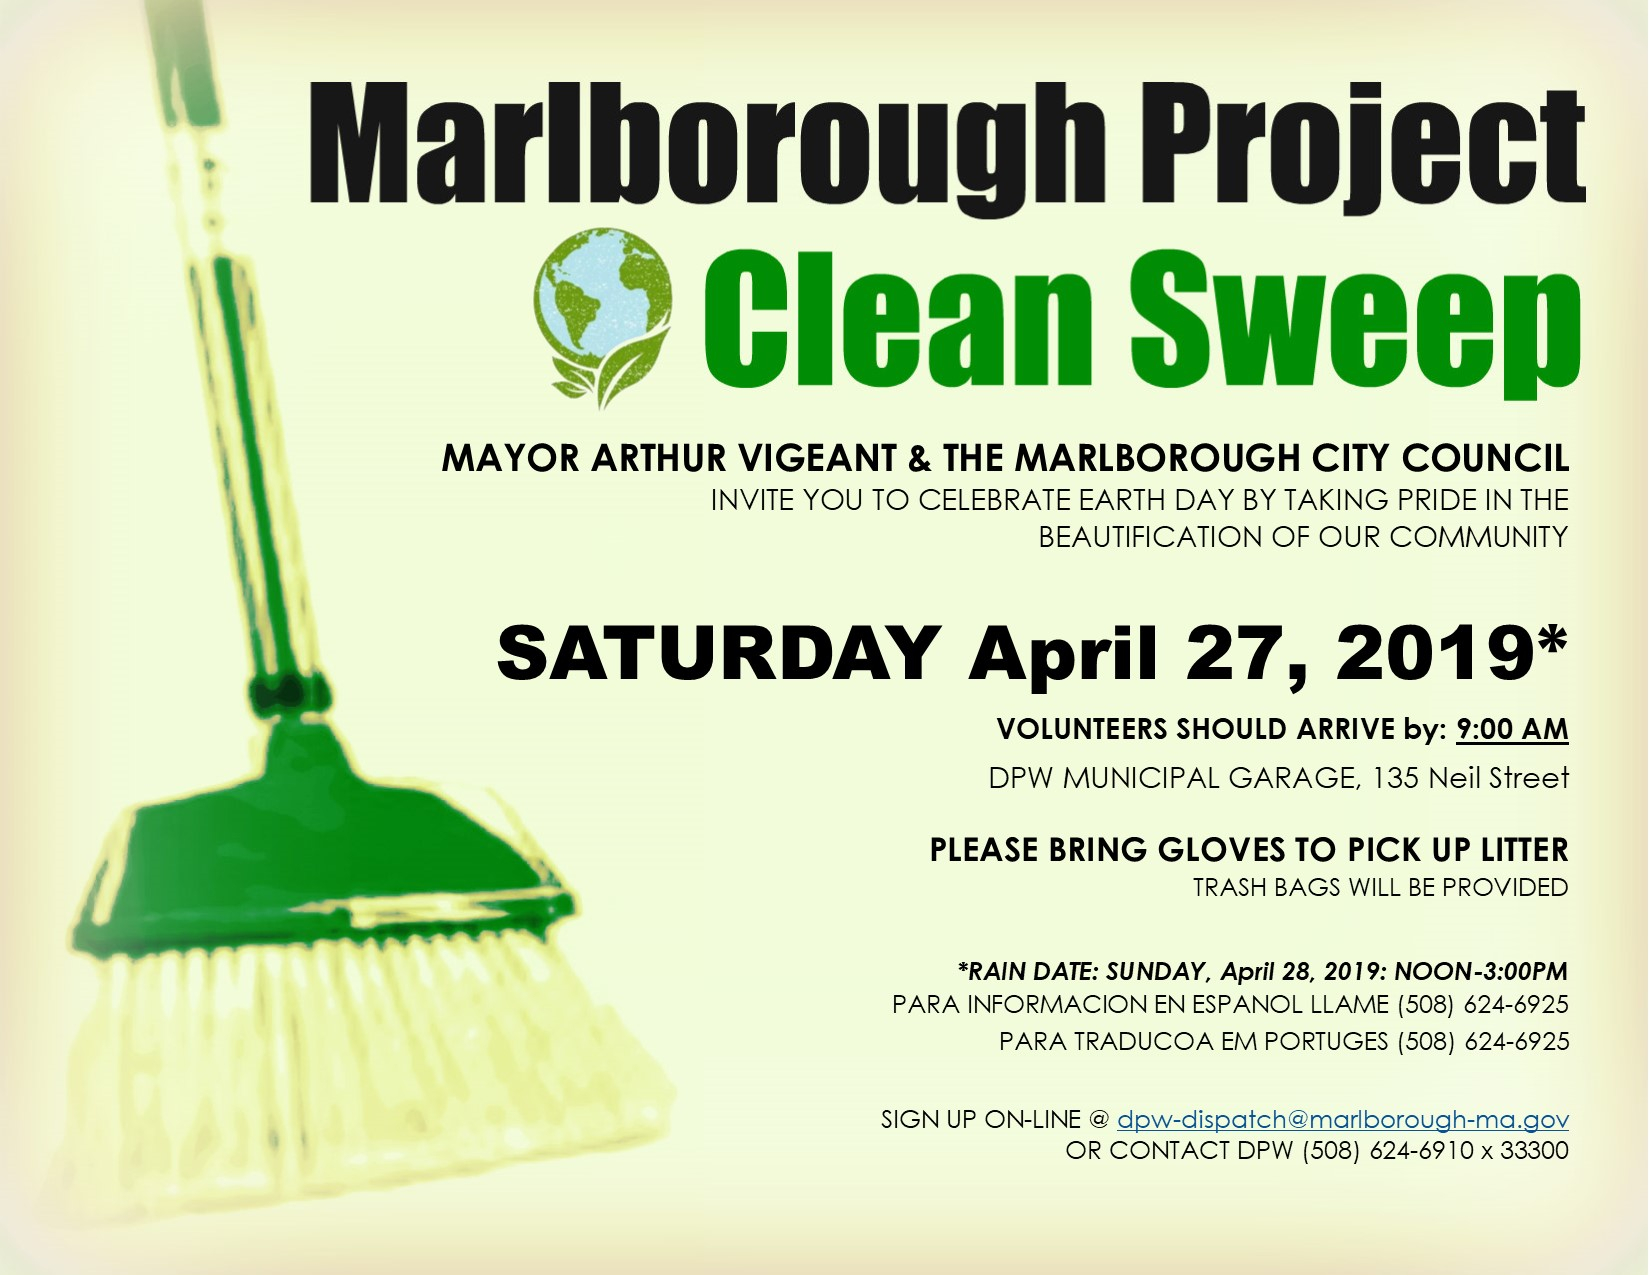 Marlborough Project Clean Sweep